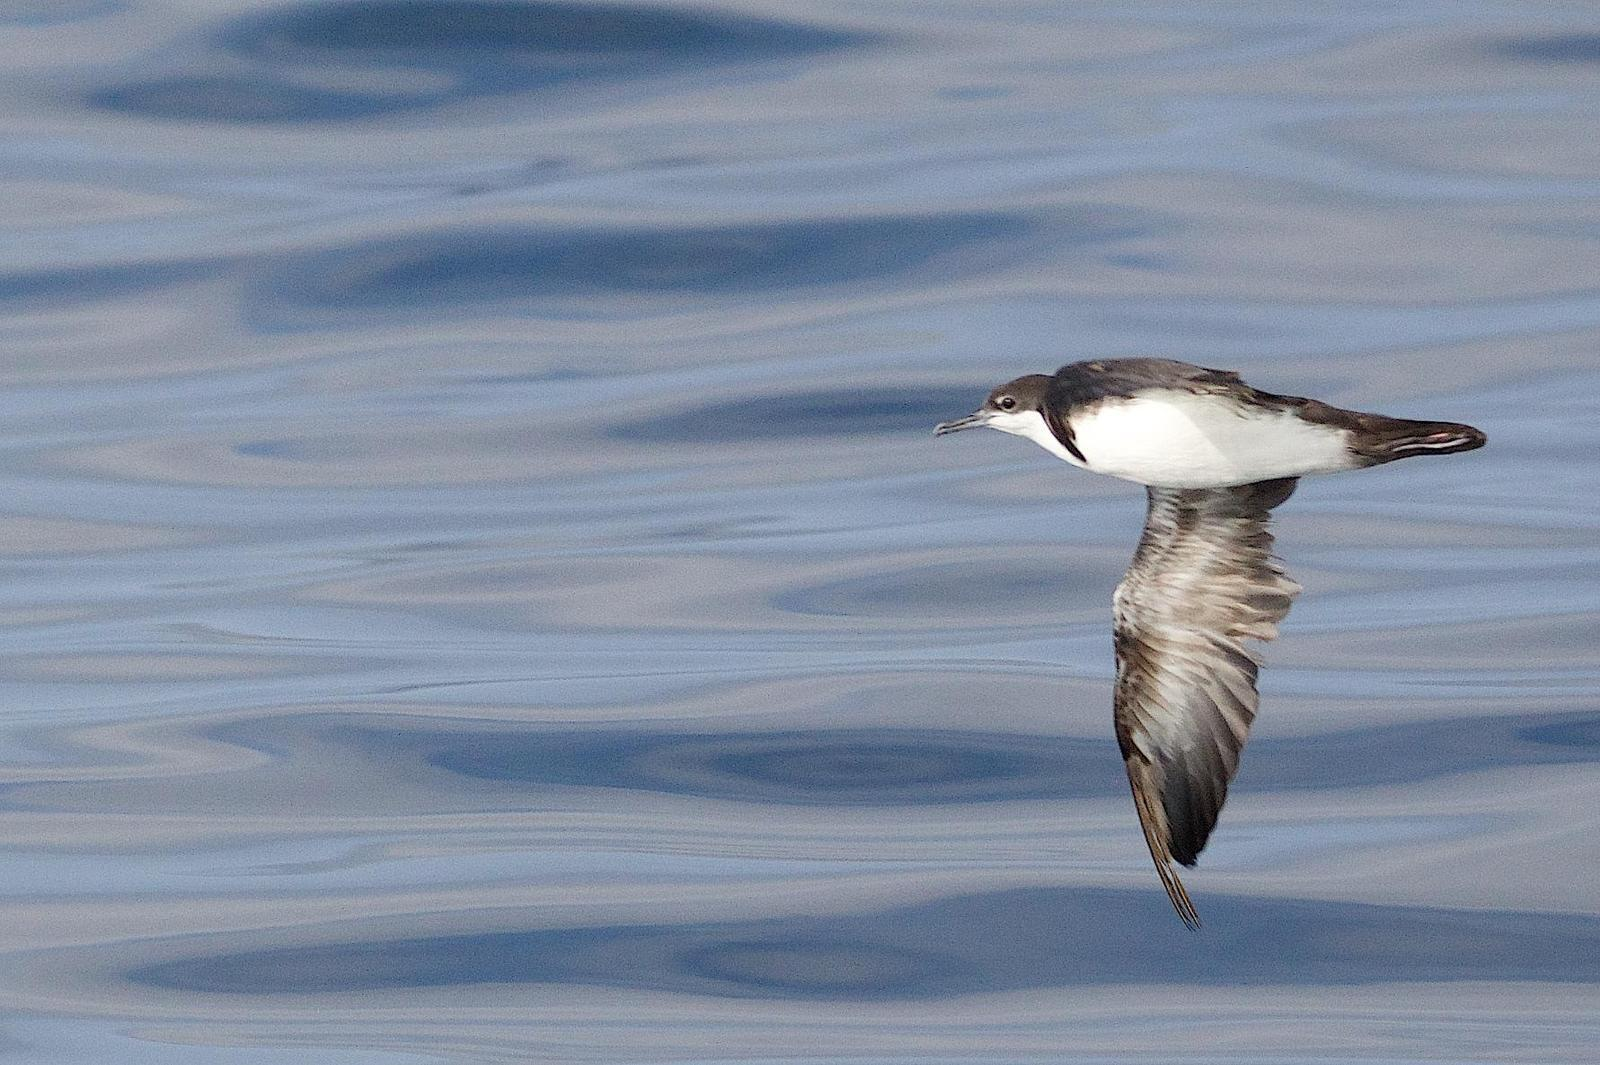 Audubon's Shearwater Photo by Gerald Hoekstra